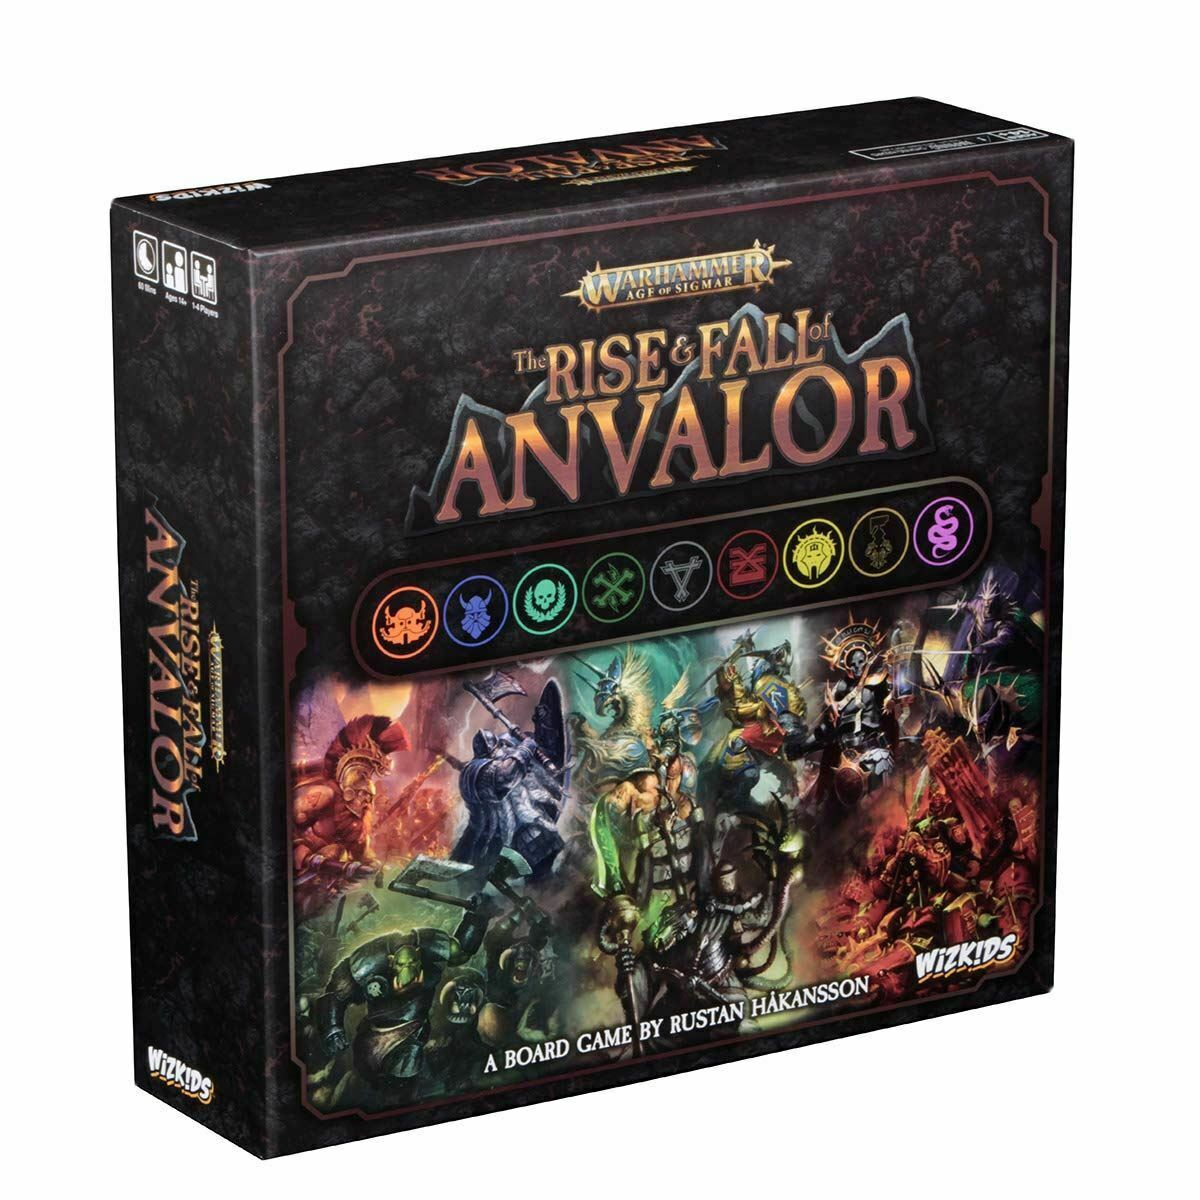 The Rise & Fall of anvalor Board Game